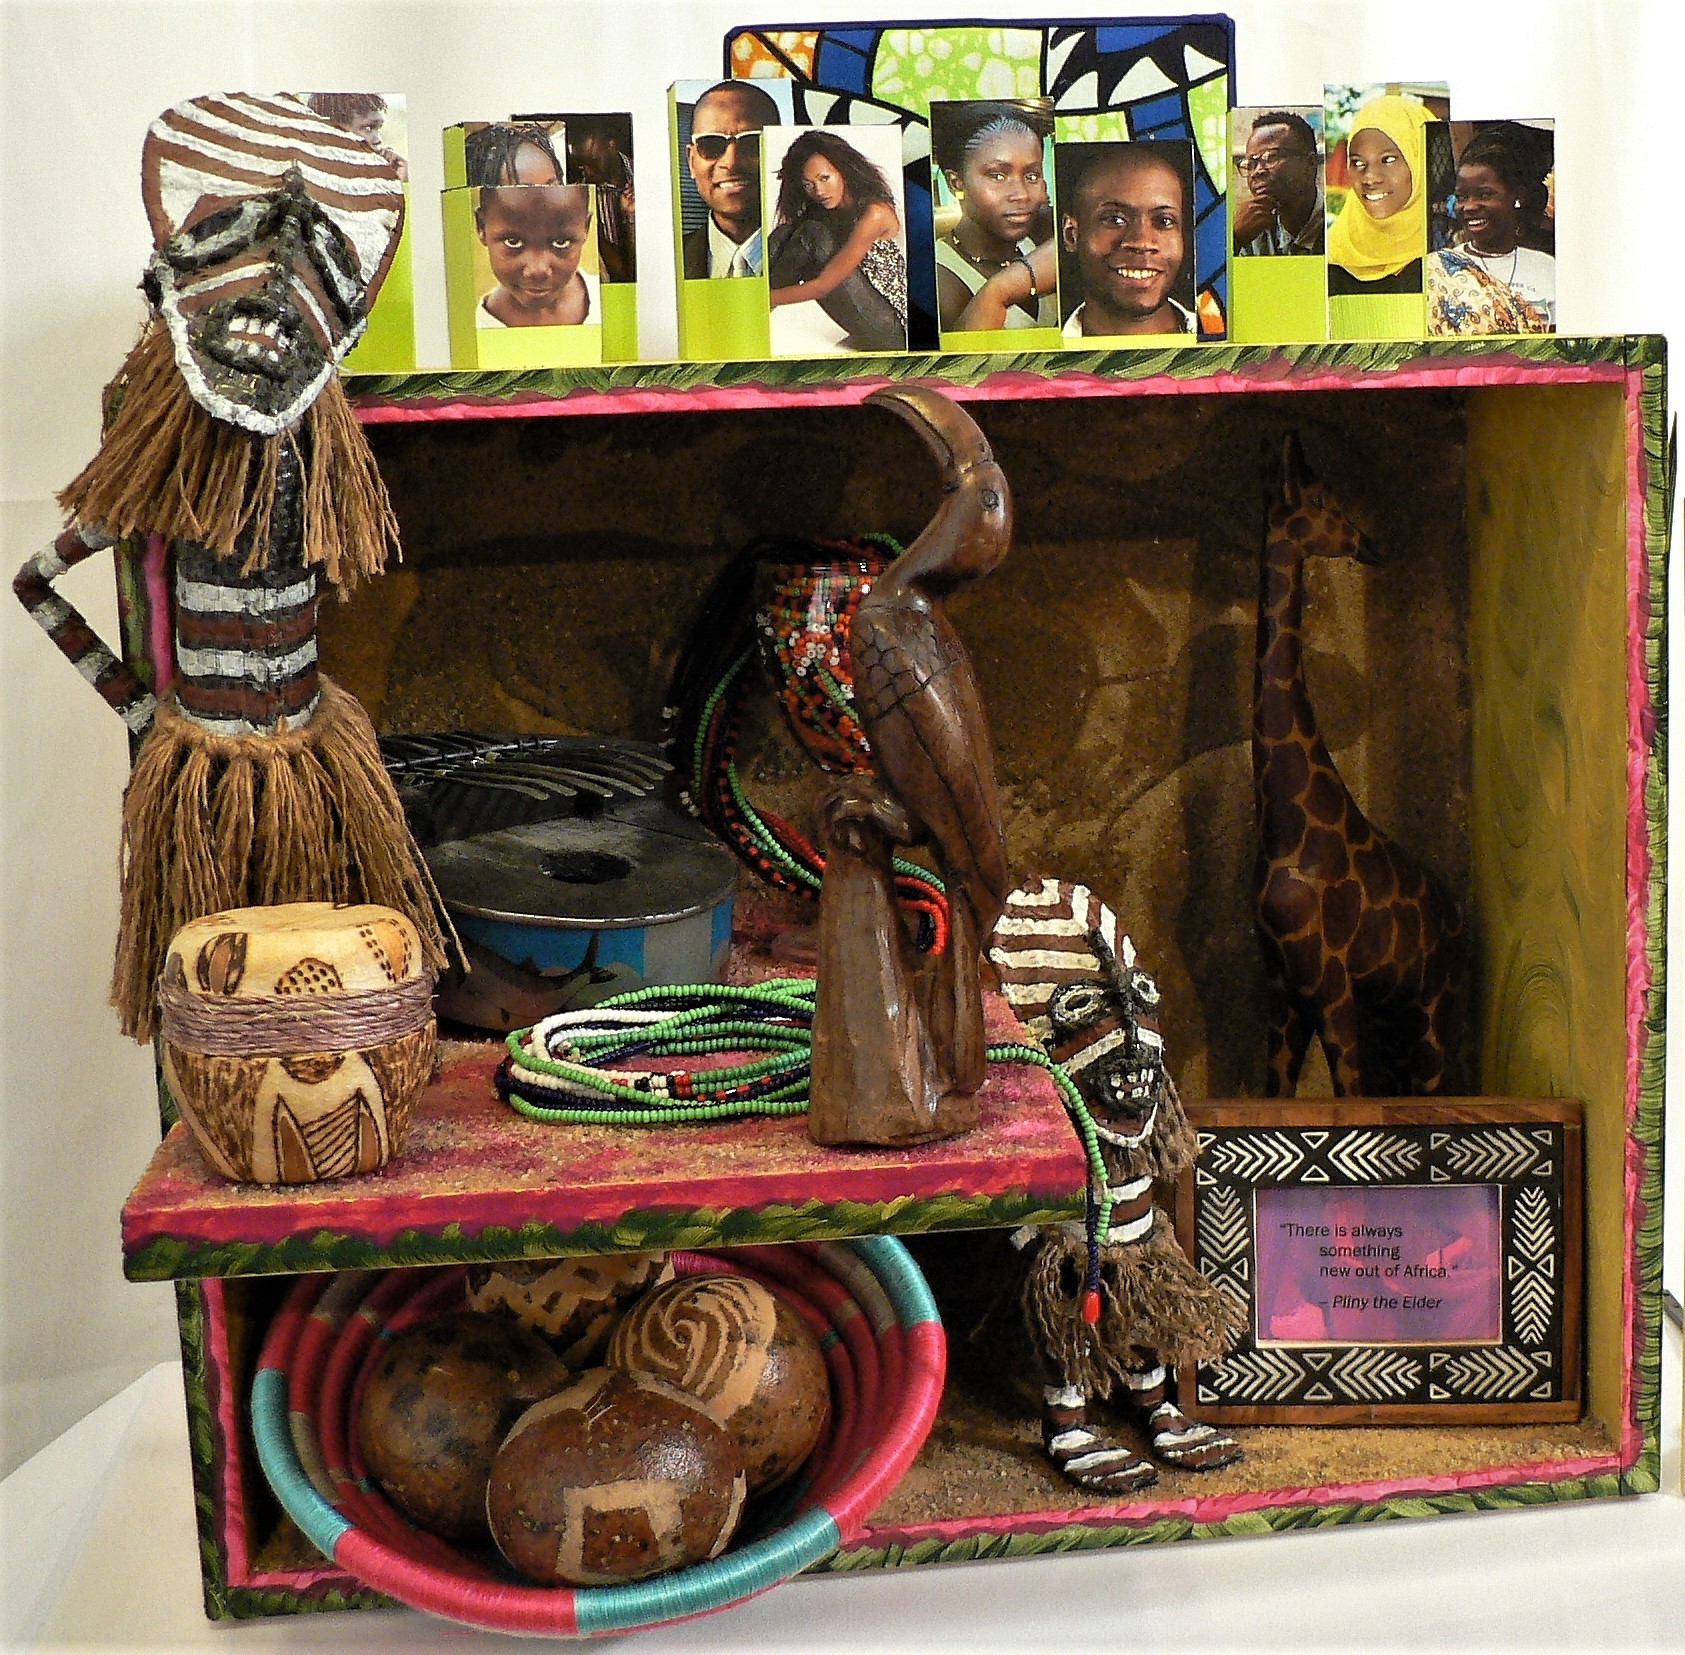 "54 Africas - ""There is always something new out of Africa."" -- Pliny the ElderMaterials: Shagaan Zambezi dolls; African hand-carved wood animals; African 'monkey apple' balls; photo frame; Freedom from Hunger photo (gift to the artist); African necklace beads; African basket; wood dresser drawer; sand; African sardine can musical instrument; drum-shaped votive candle holder; African face images from the internet; barbeque satay sticks; cloth gift box lid; glass goblet; acrylic paint; paper. Dimensions: 17""H x 17""W x 14""D. Created: September 2018.Status: For Sale ($250)"